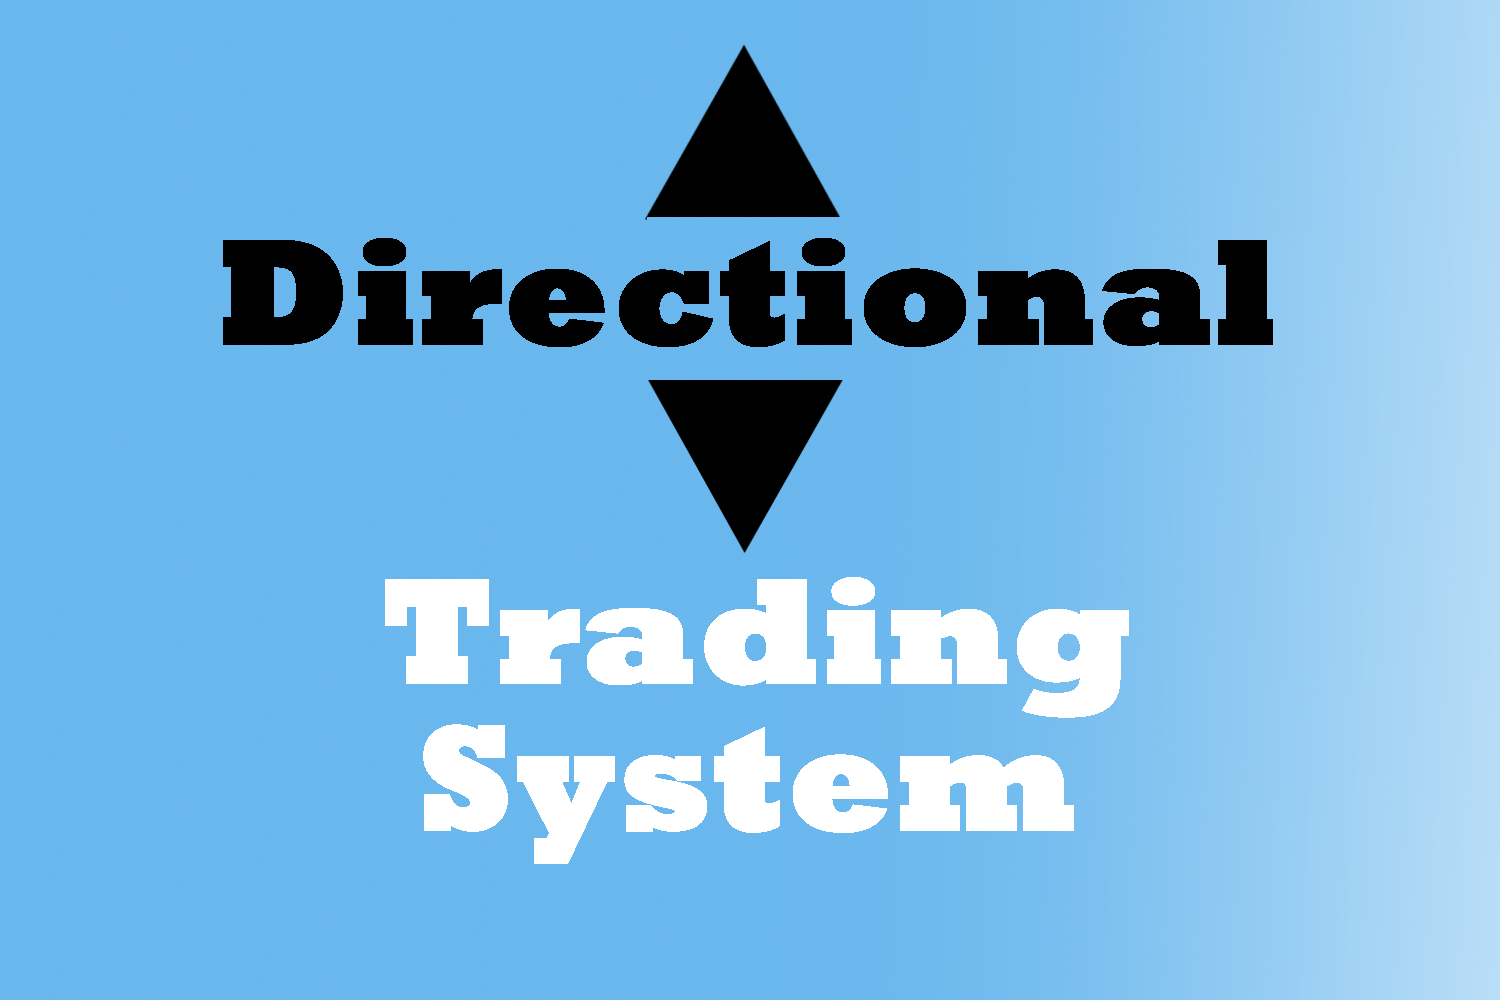 Directional Trading System